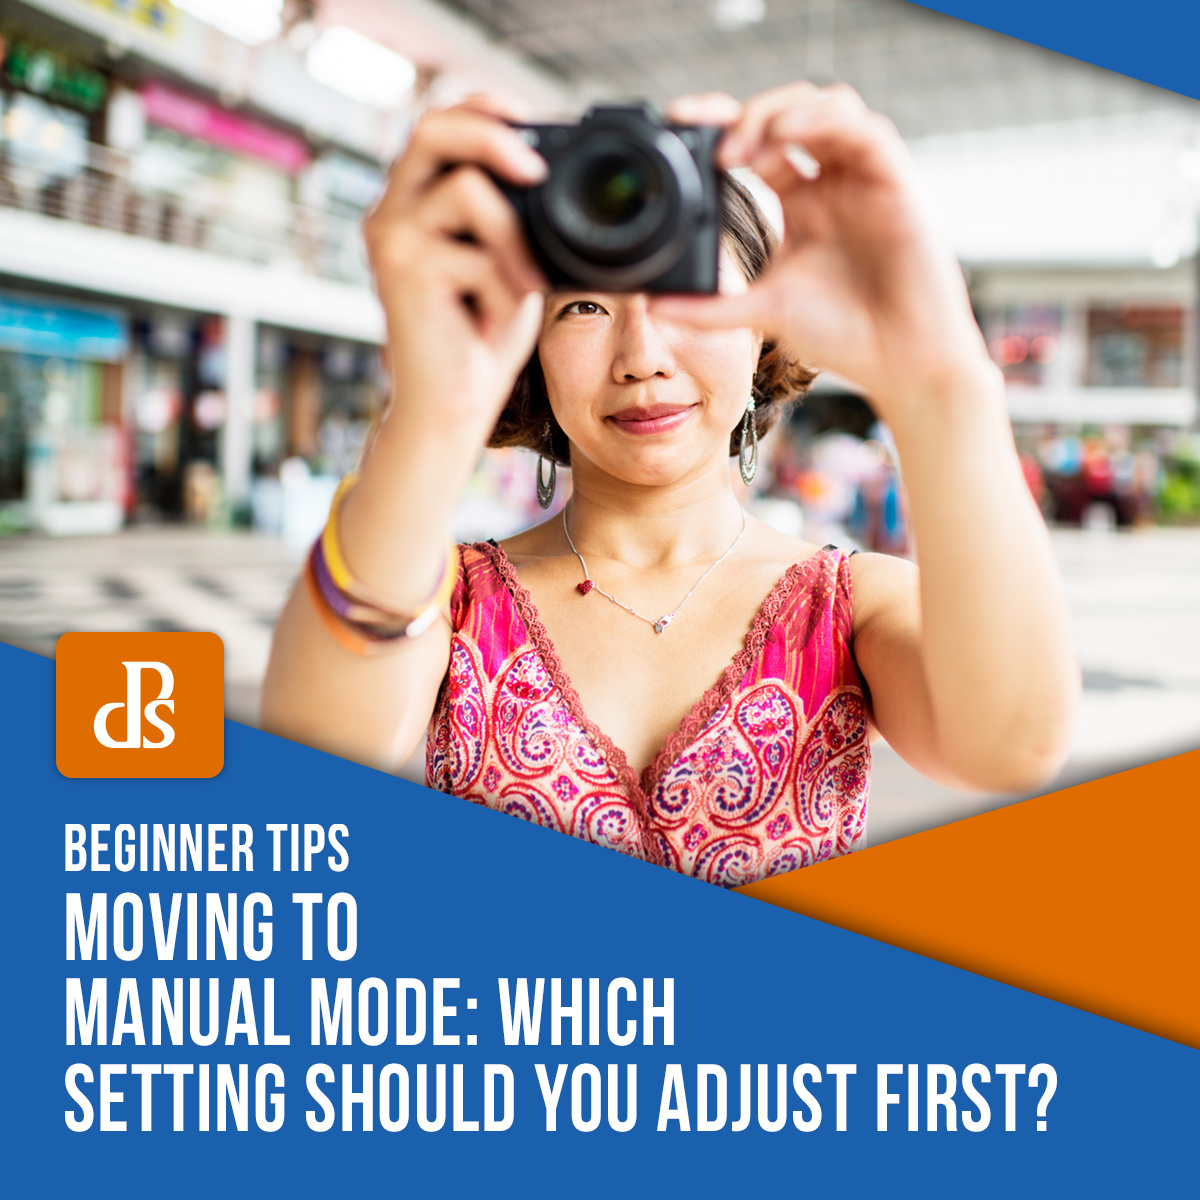 Moving to Manual Mode: Which Setting Should You Adjust First?